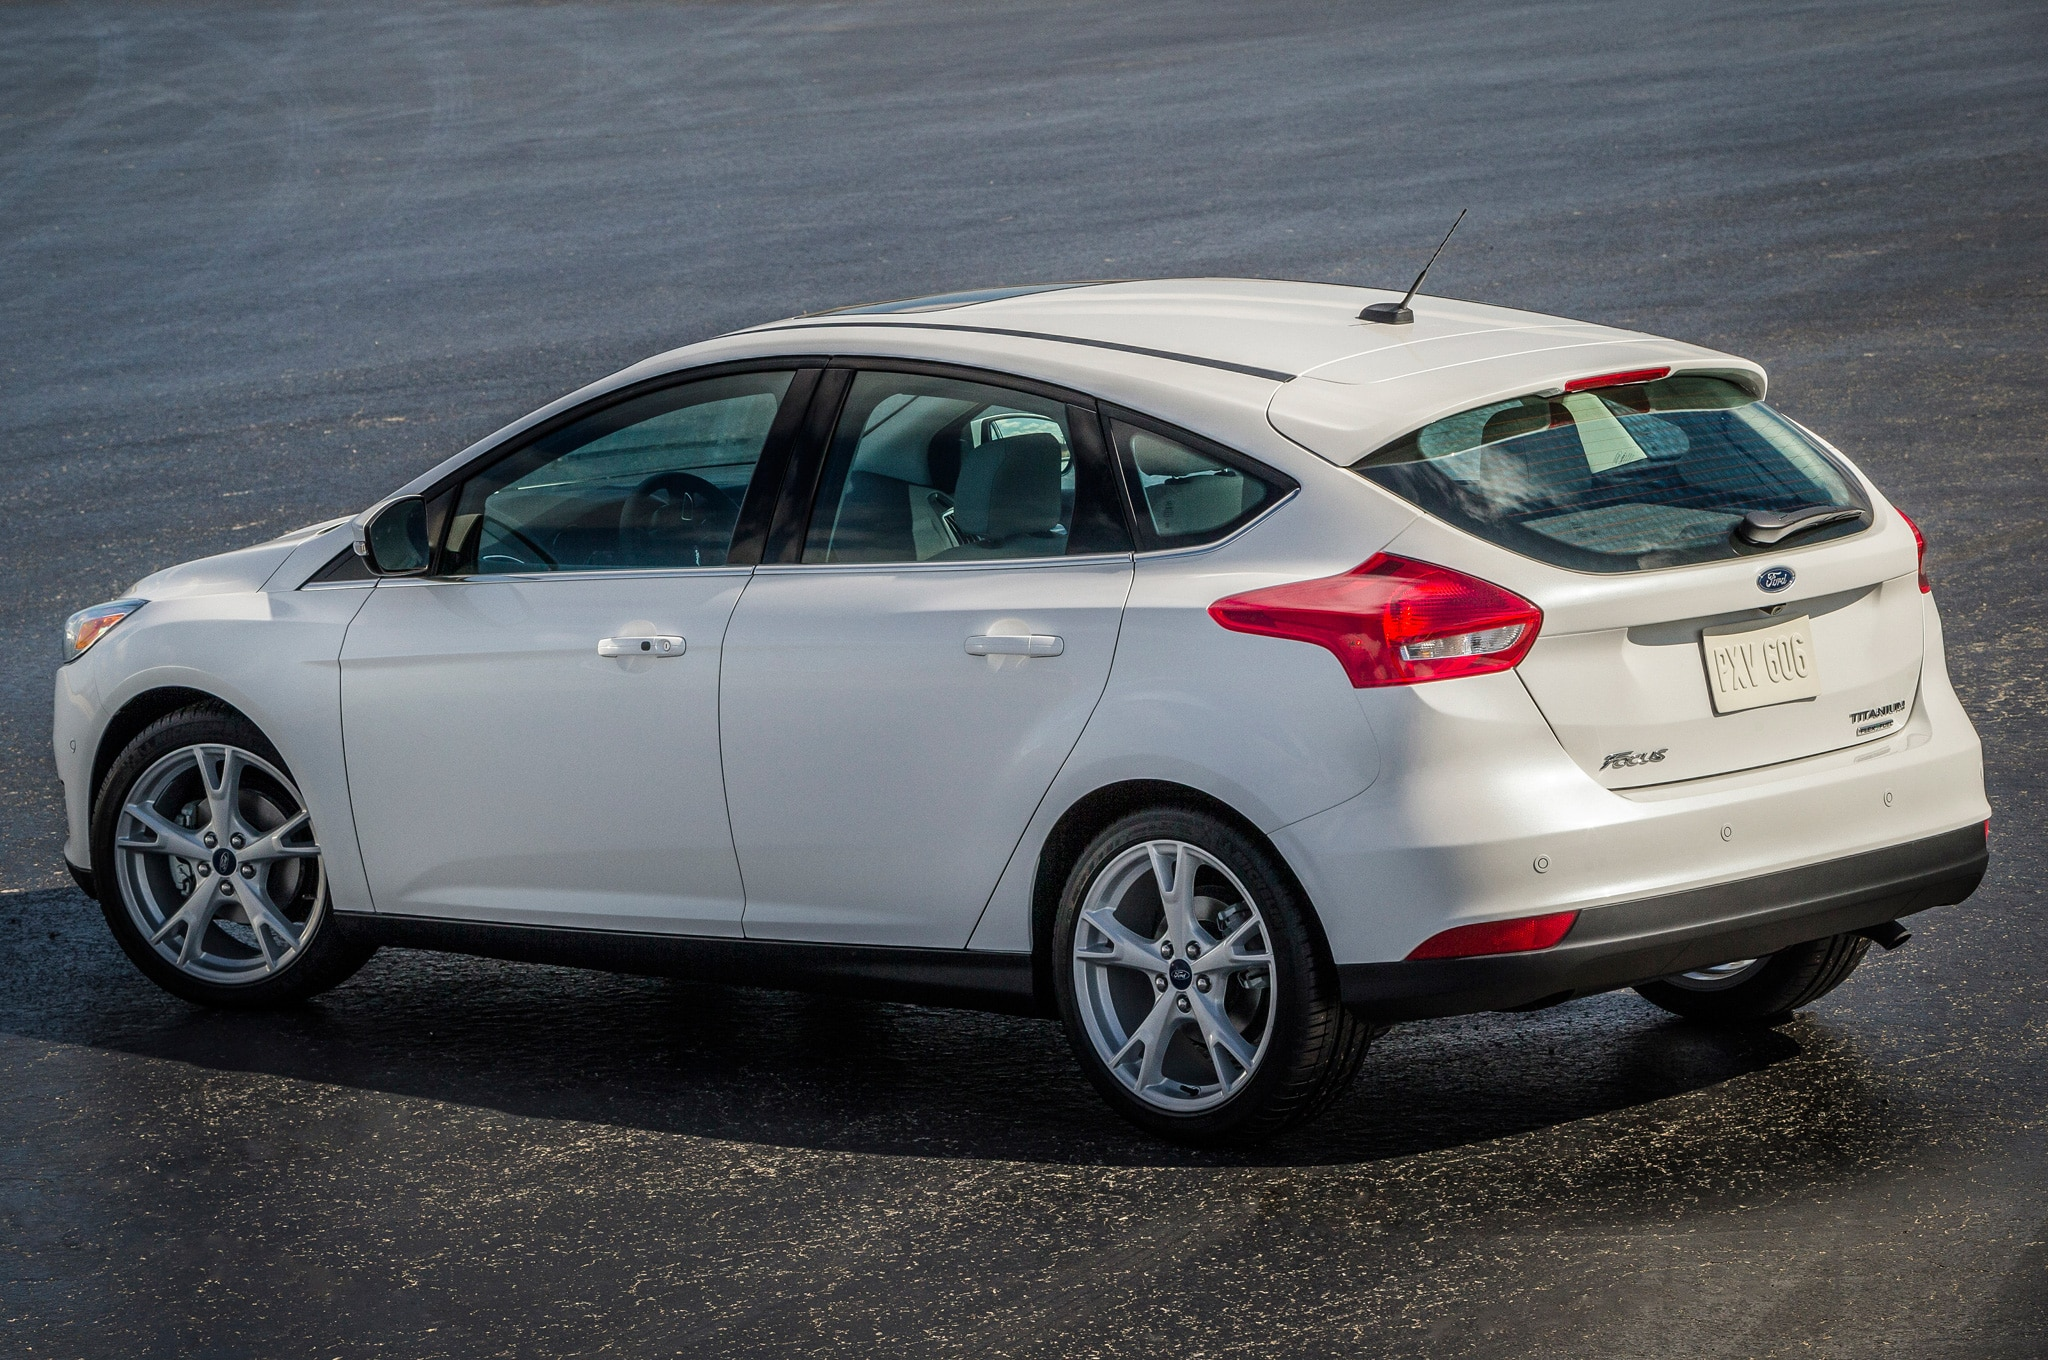 2017 Ford Focus Hatchback Rear Side View From Above